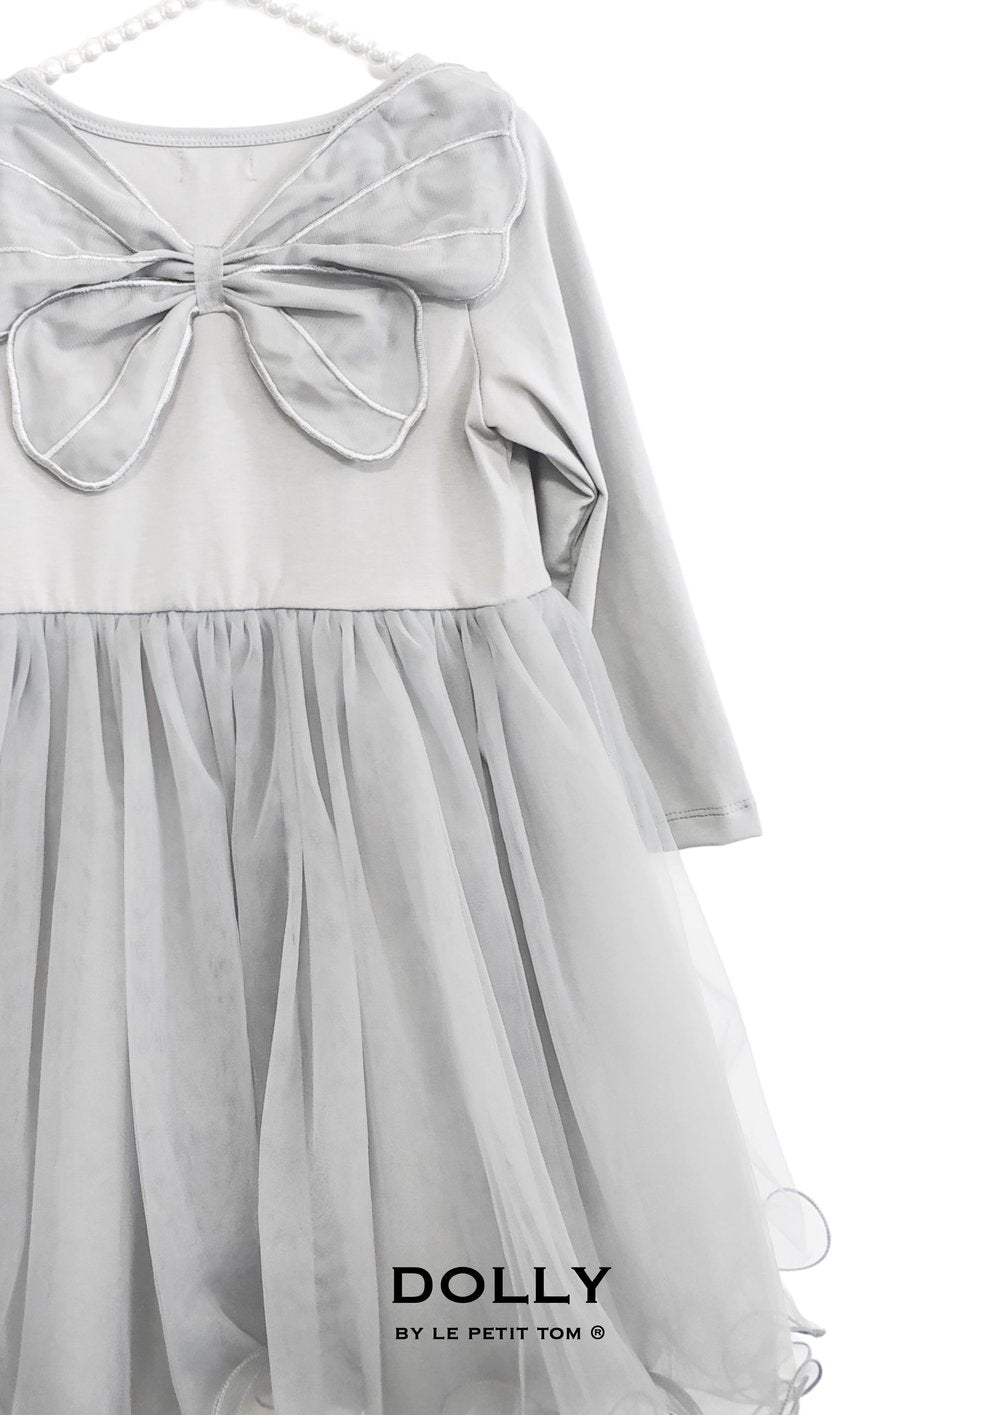 DOLLY by Le Petit Tom BUTTERFLY WINGS TUTU DRESS silver grey